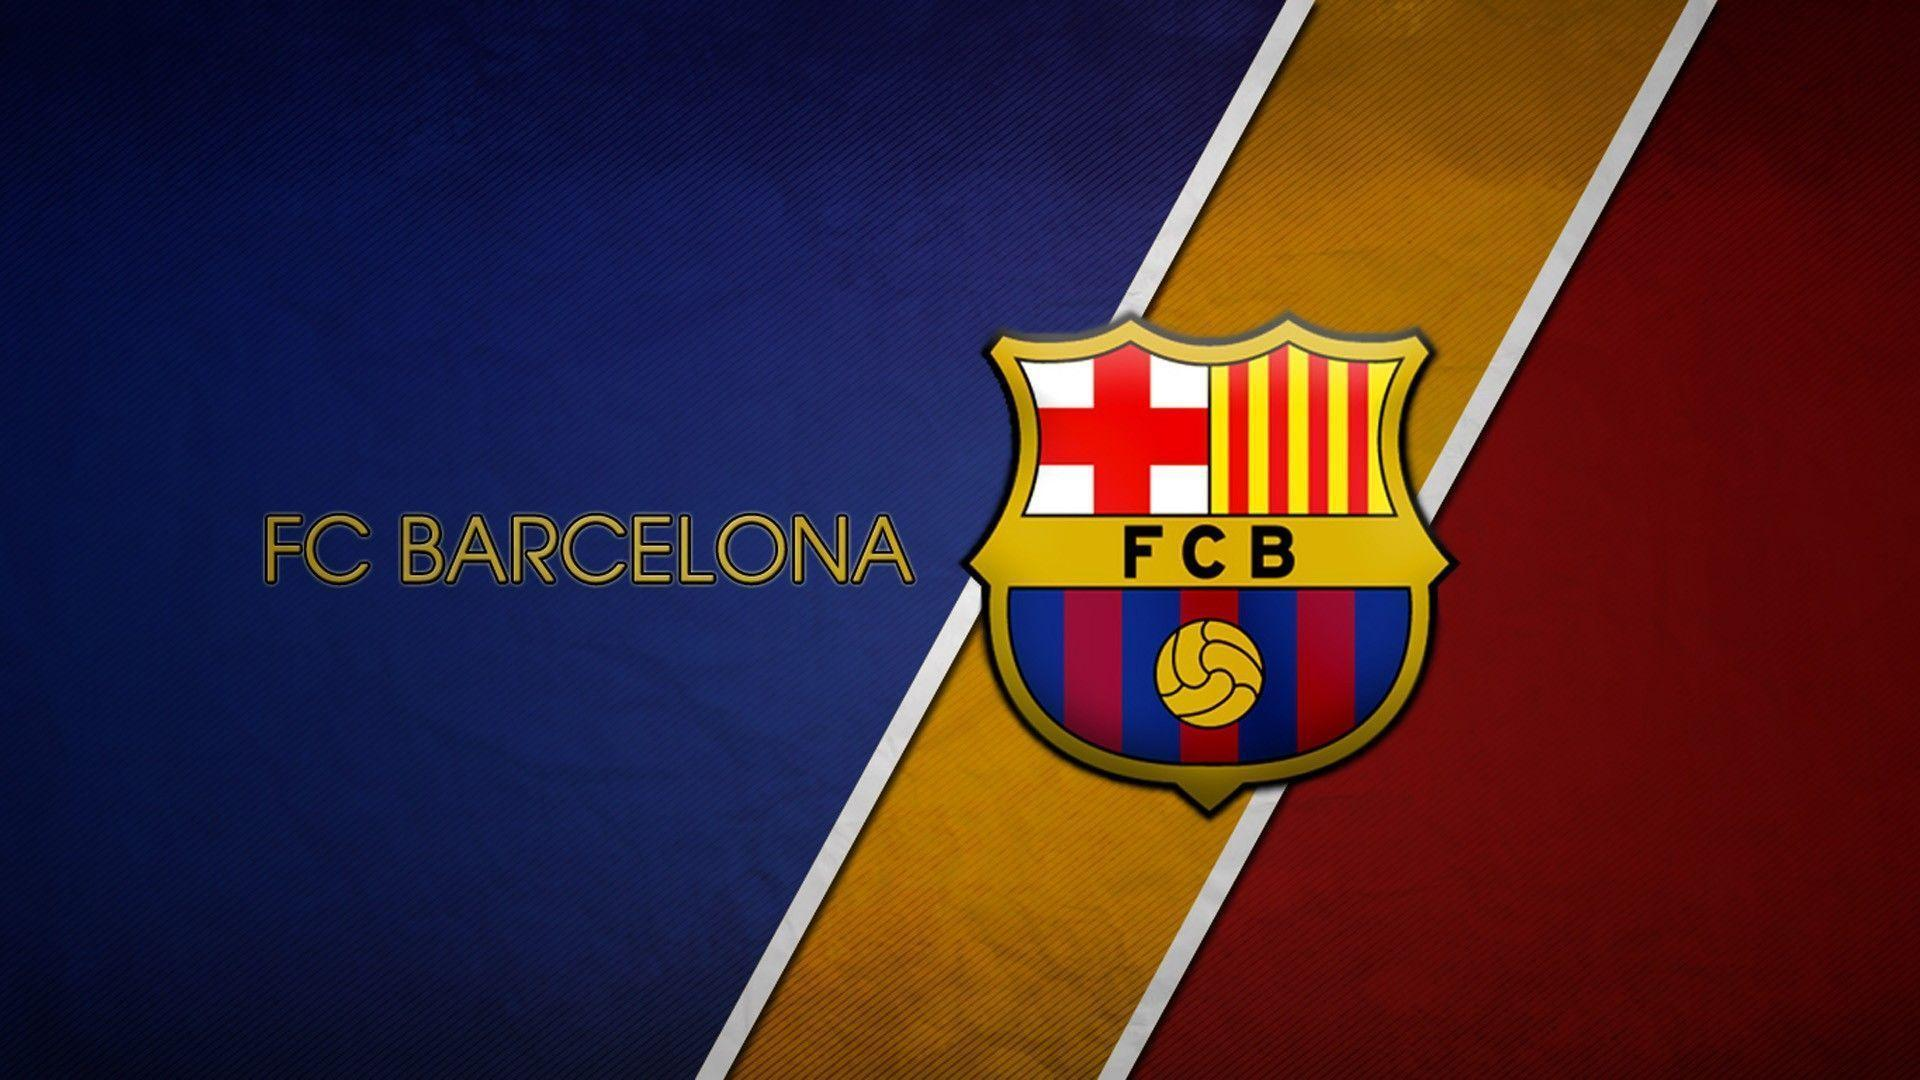 Fc Barcelona Football Logo Full HD Wallpapers Wallpapers